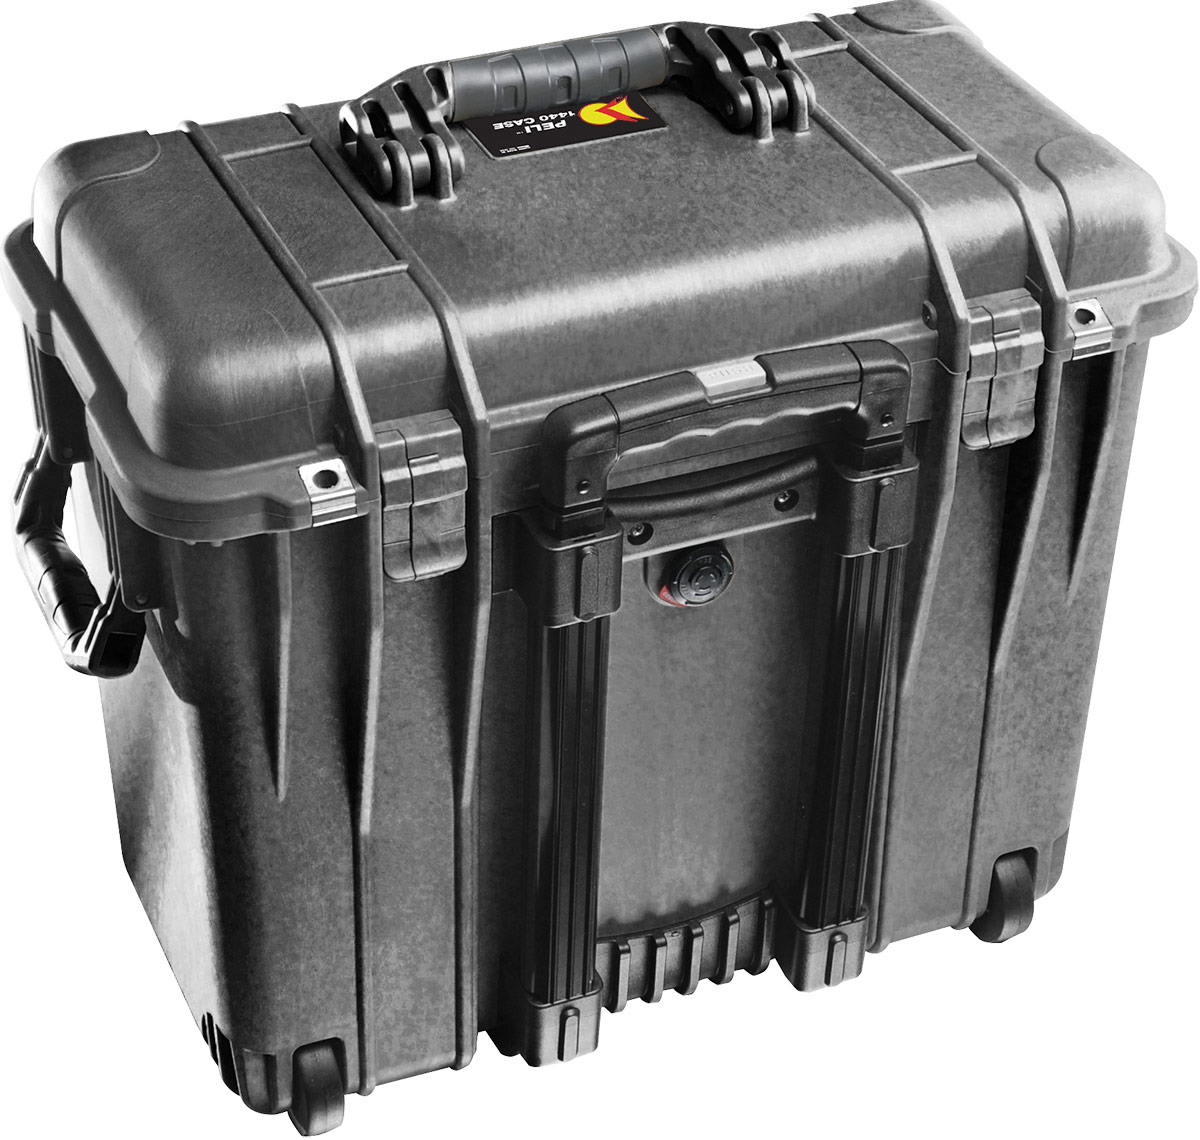 peli 1440 black top loader case